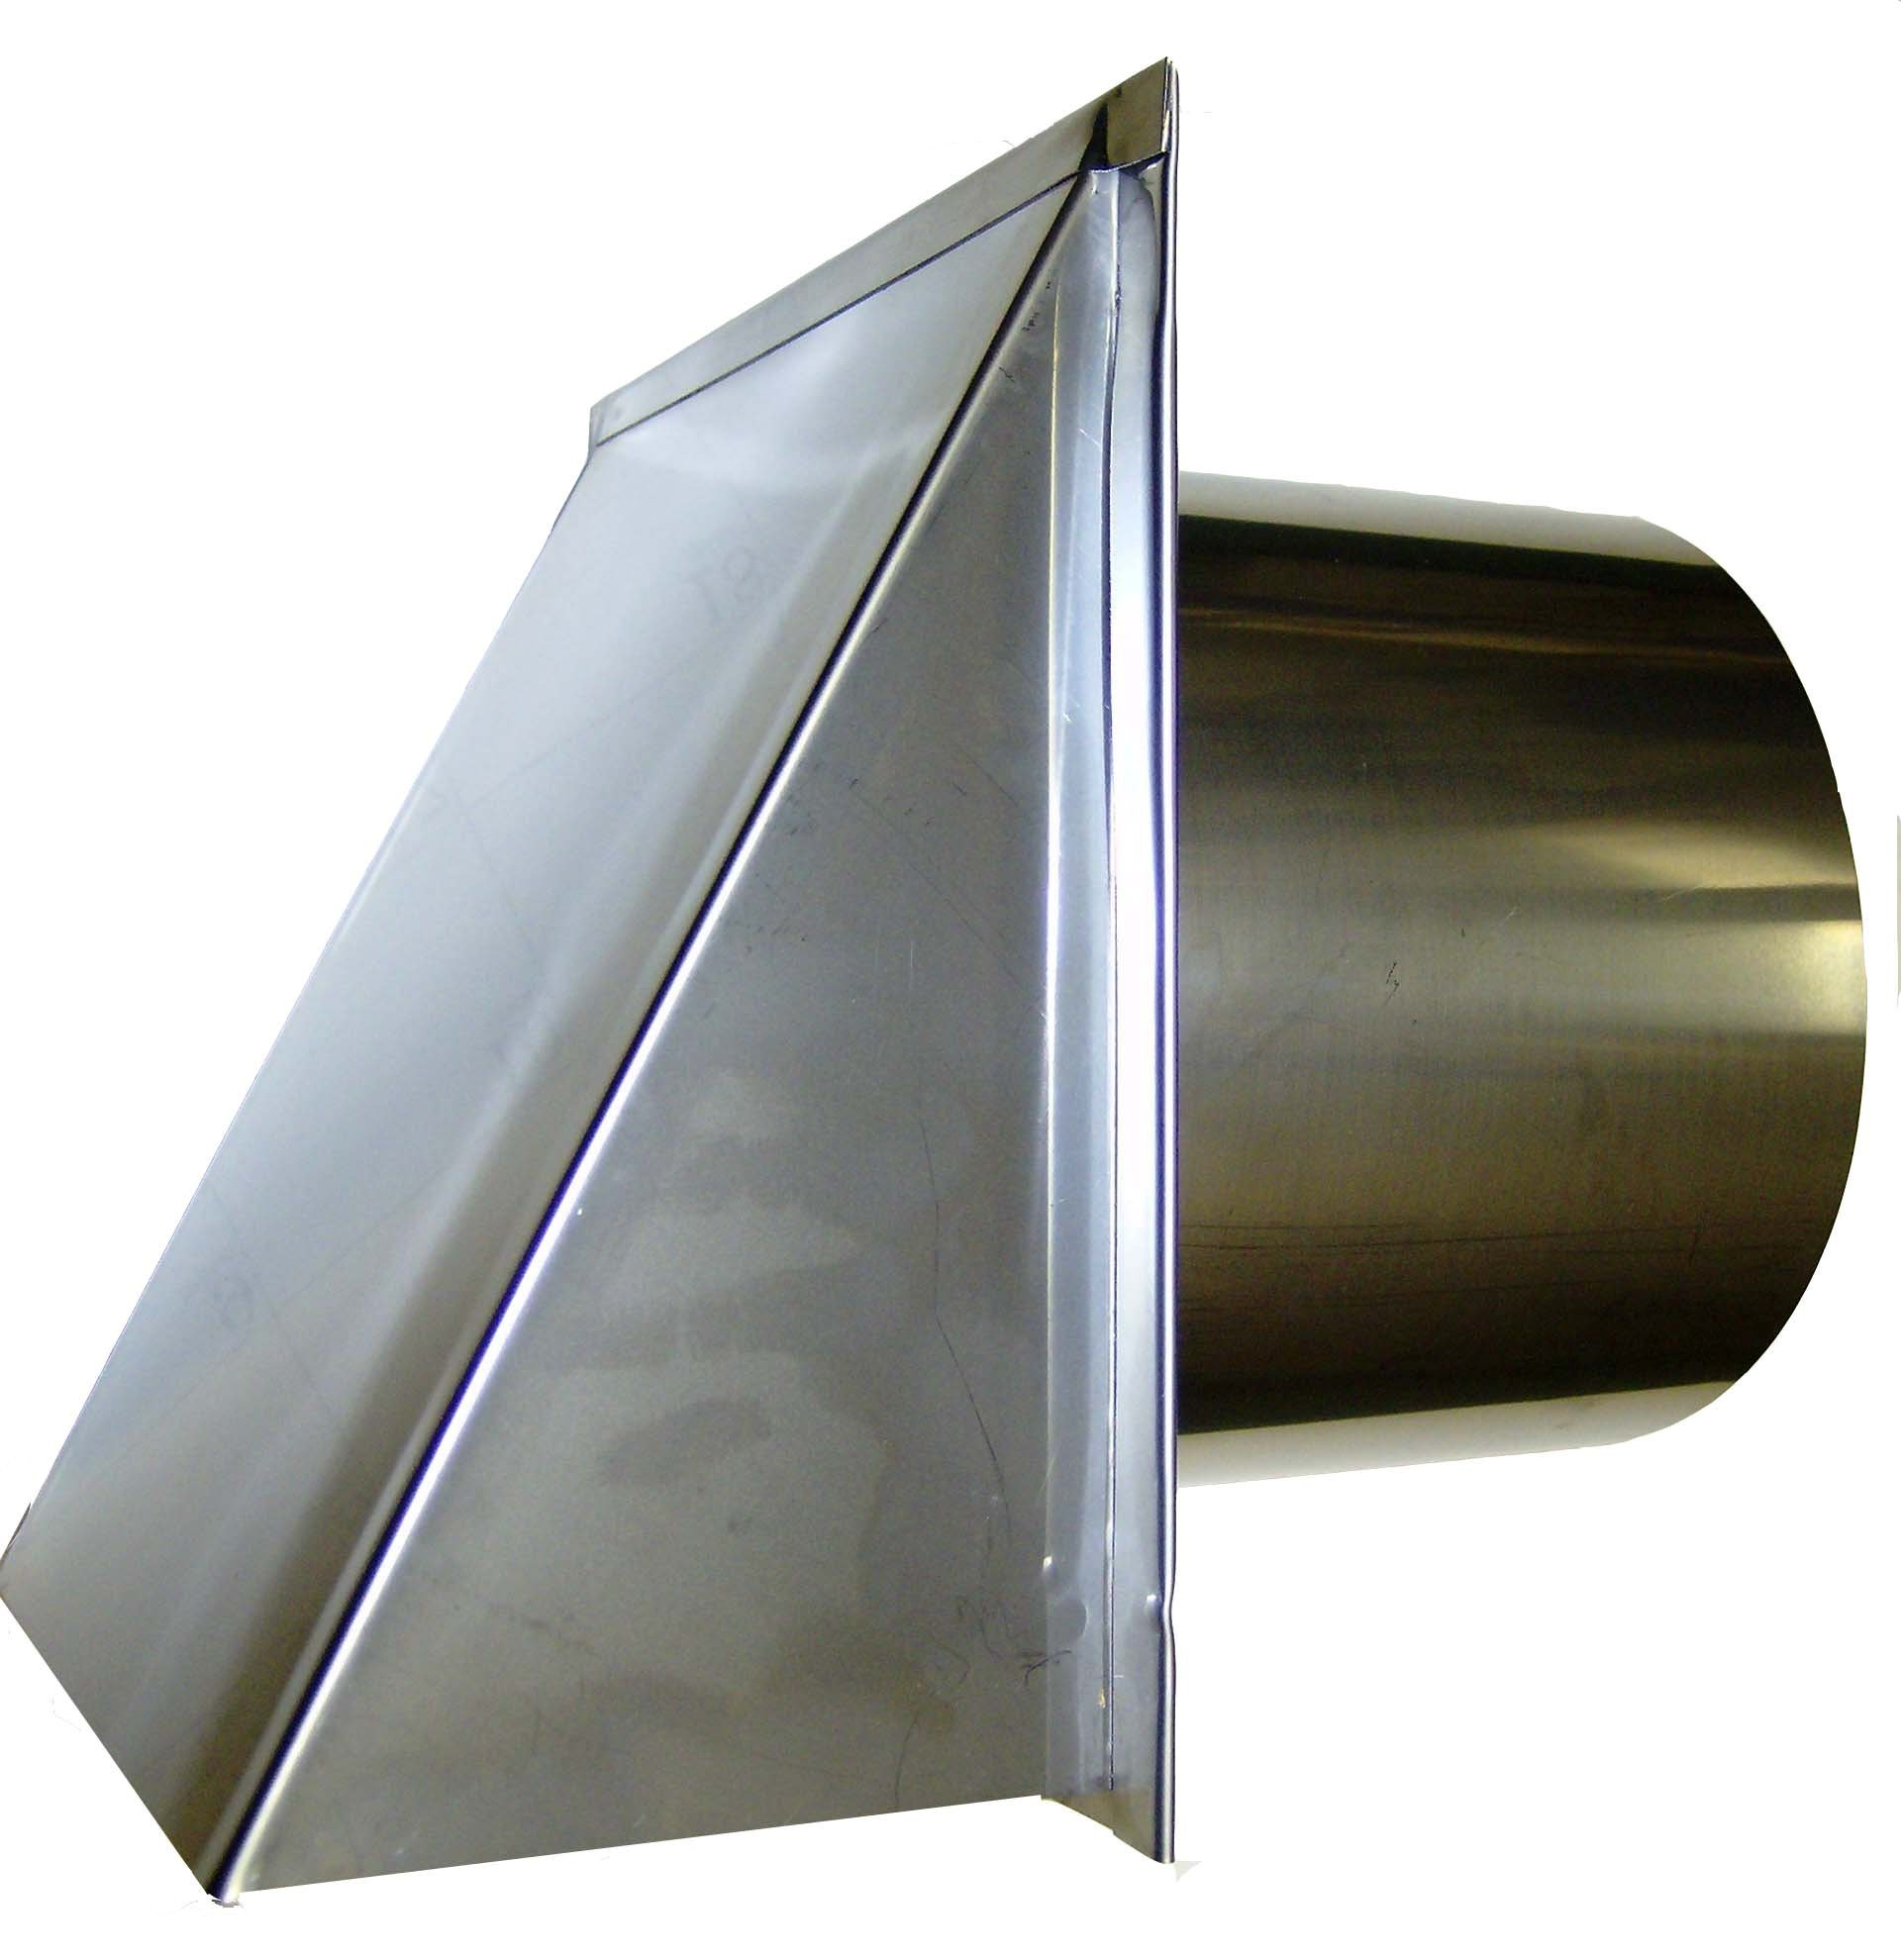 6 Inch Stainless Steel Exterior Side Wall Cap with Screen Only by Luxury Metals LLC (Image #1)